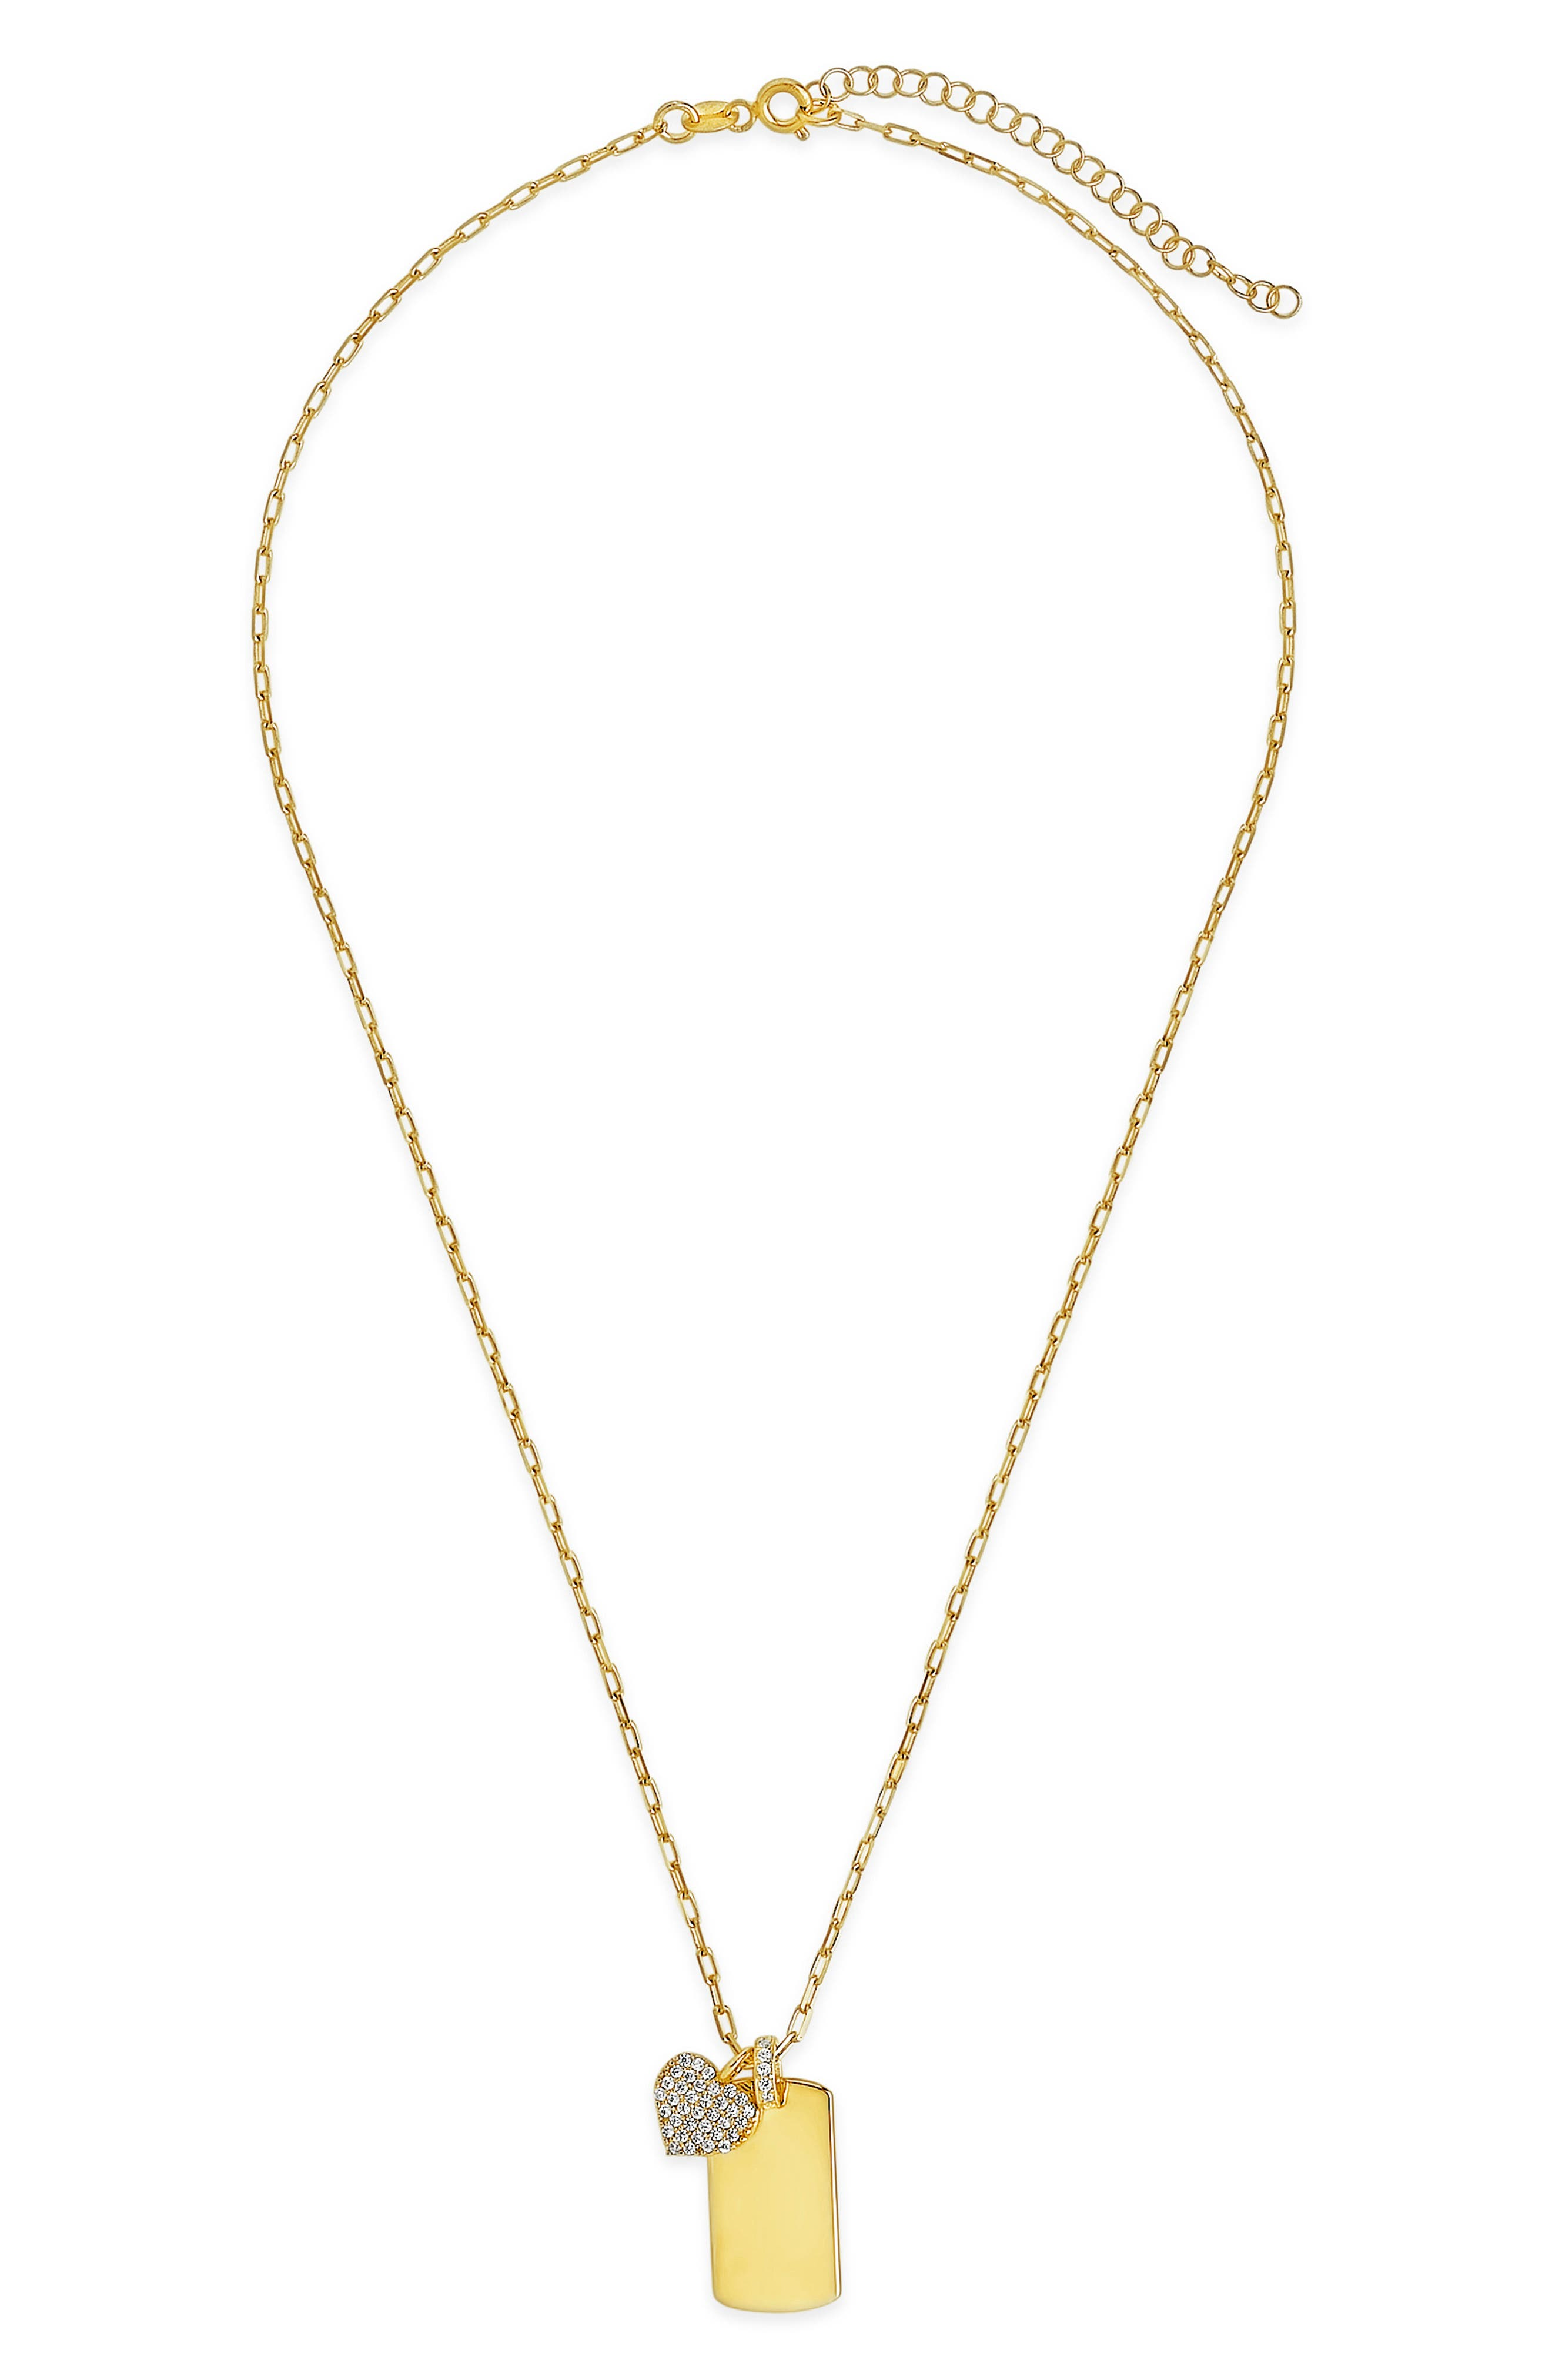 Sparkling crystals dazzle the heart pendant suspended with a sleek, glimmering tag on a chain-link necklace. Style Name: Sterling Forever Tag & Heart Pendant Necklace. Style Number: 6173949. Available in stores.